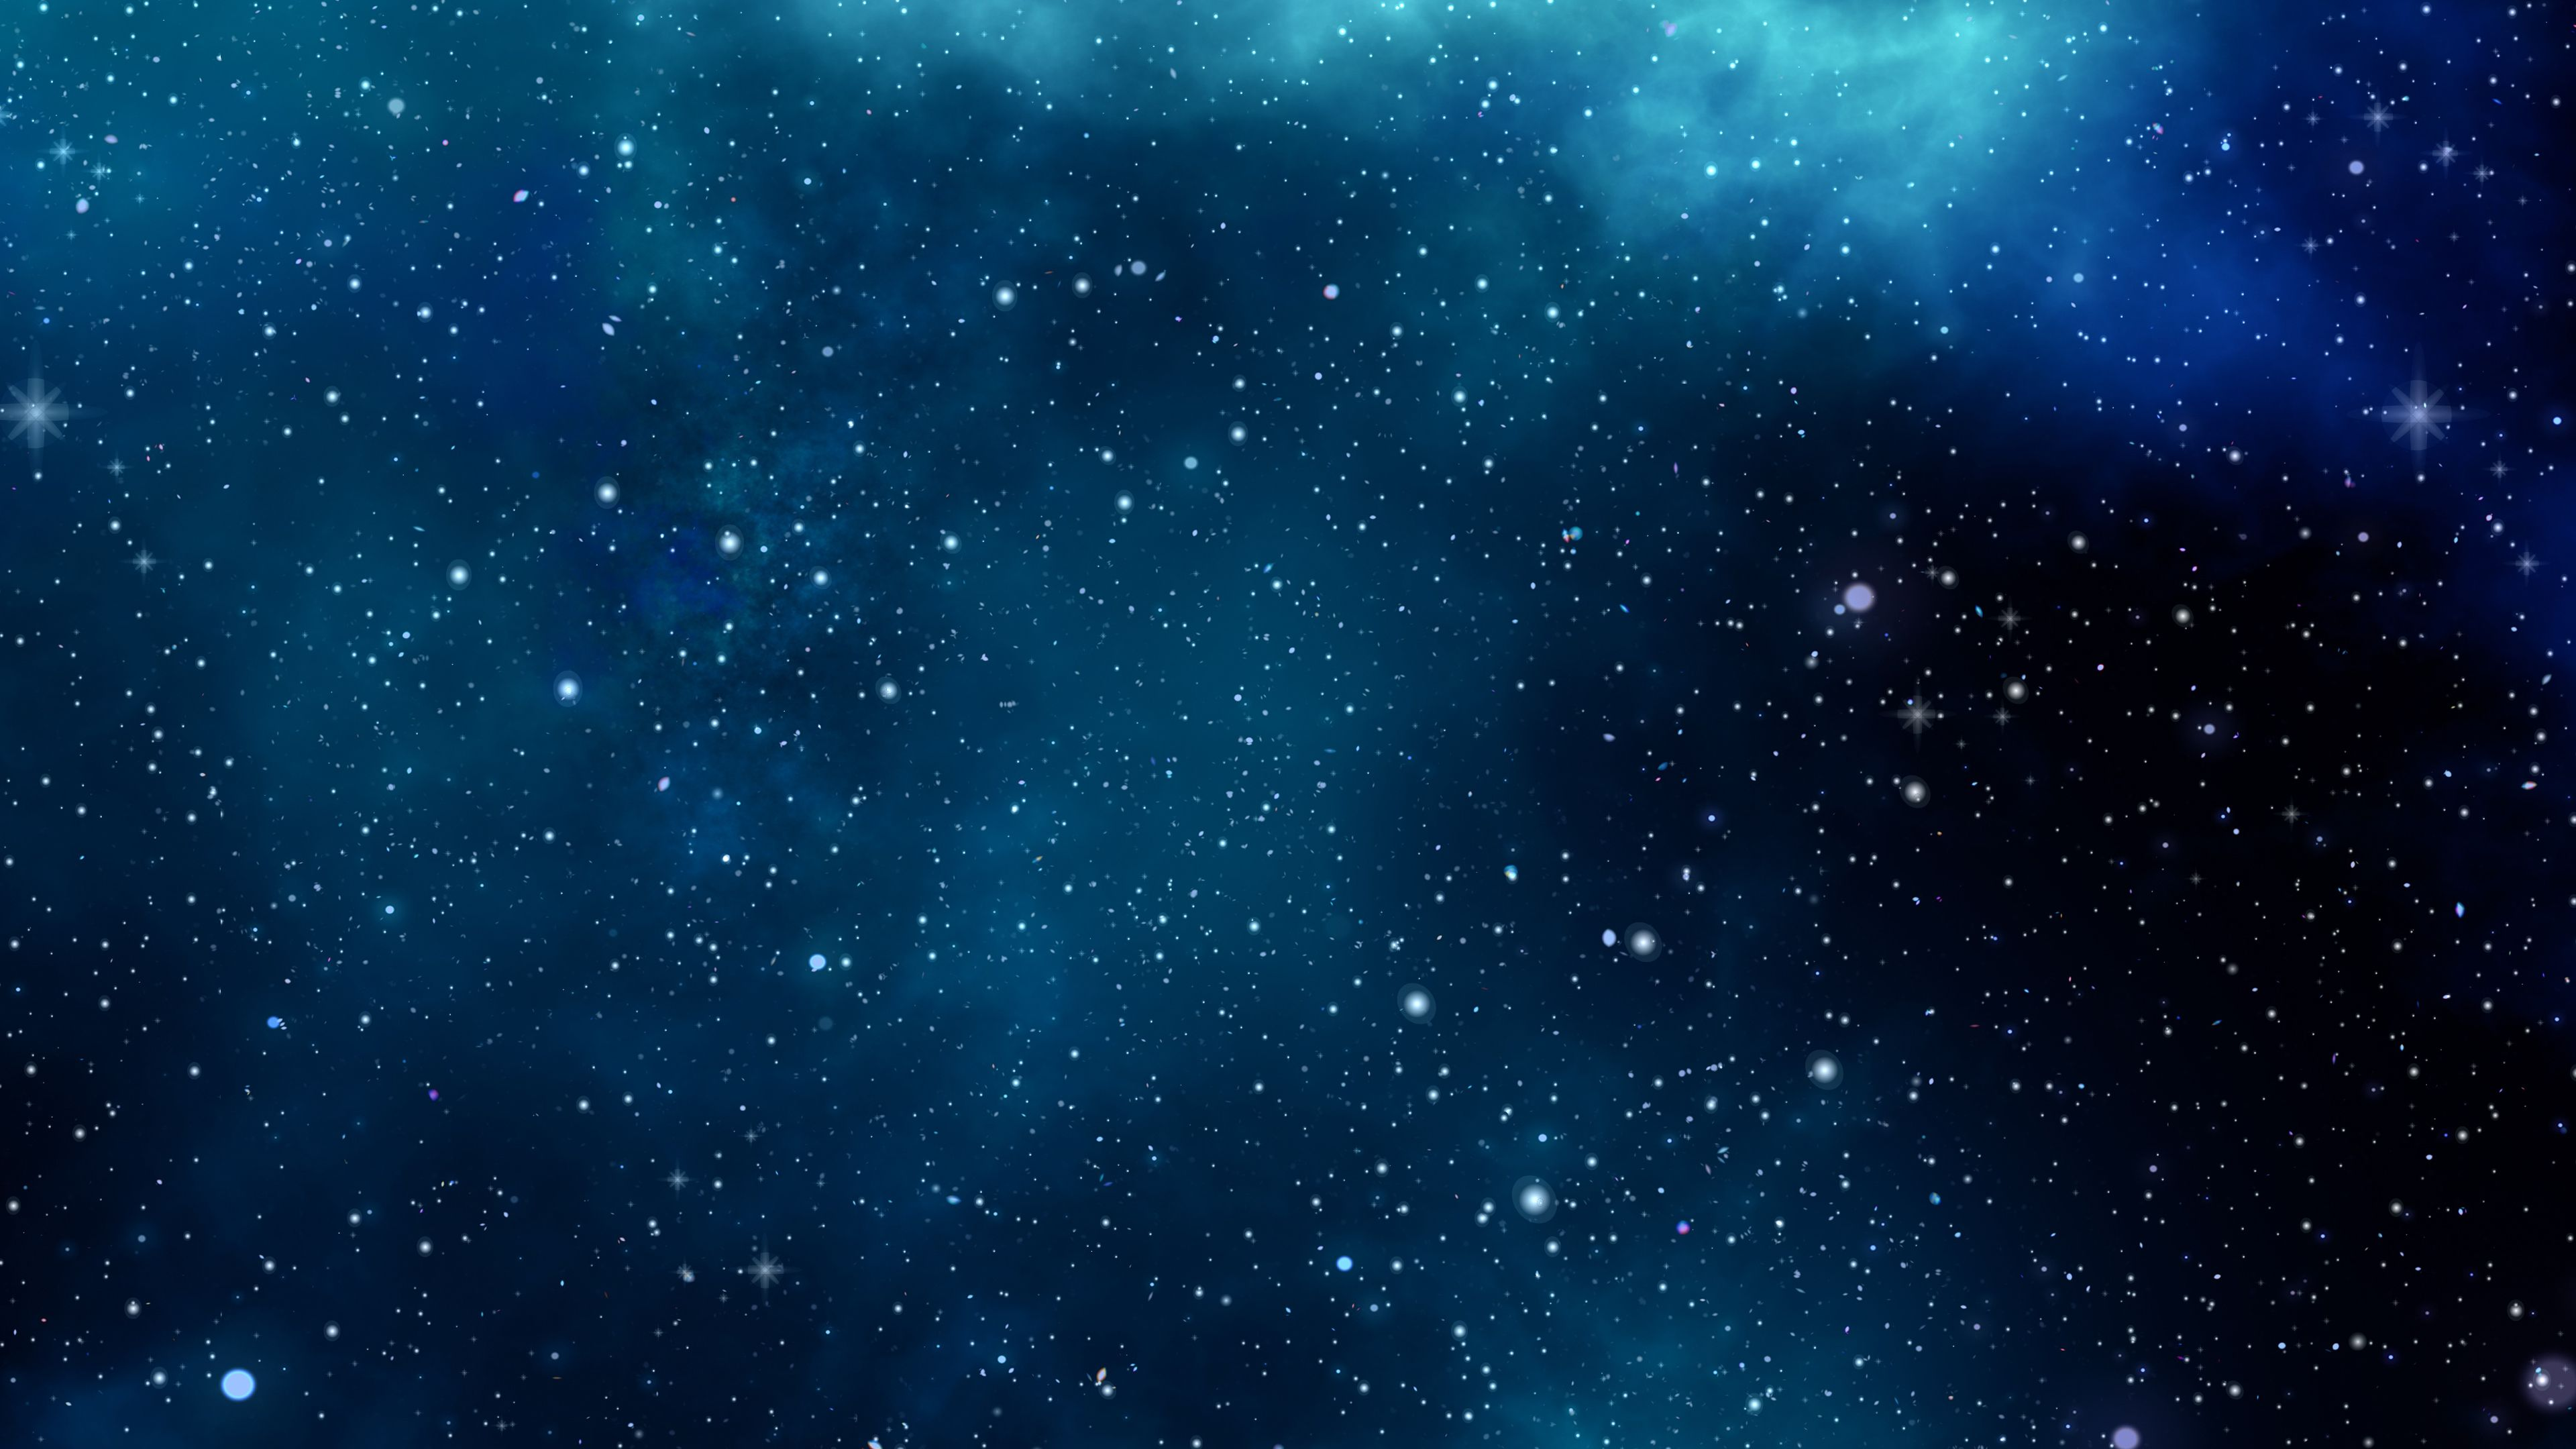 Blue Space Wallpapers - Top Free Blue